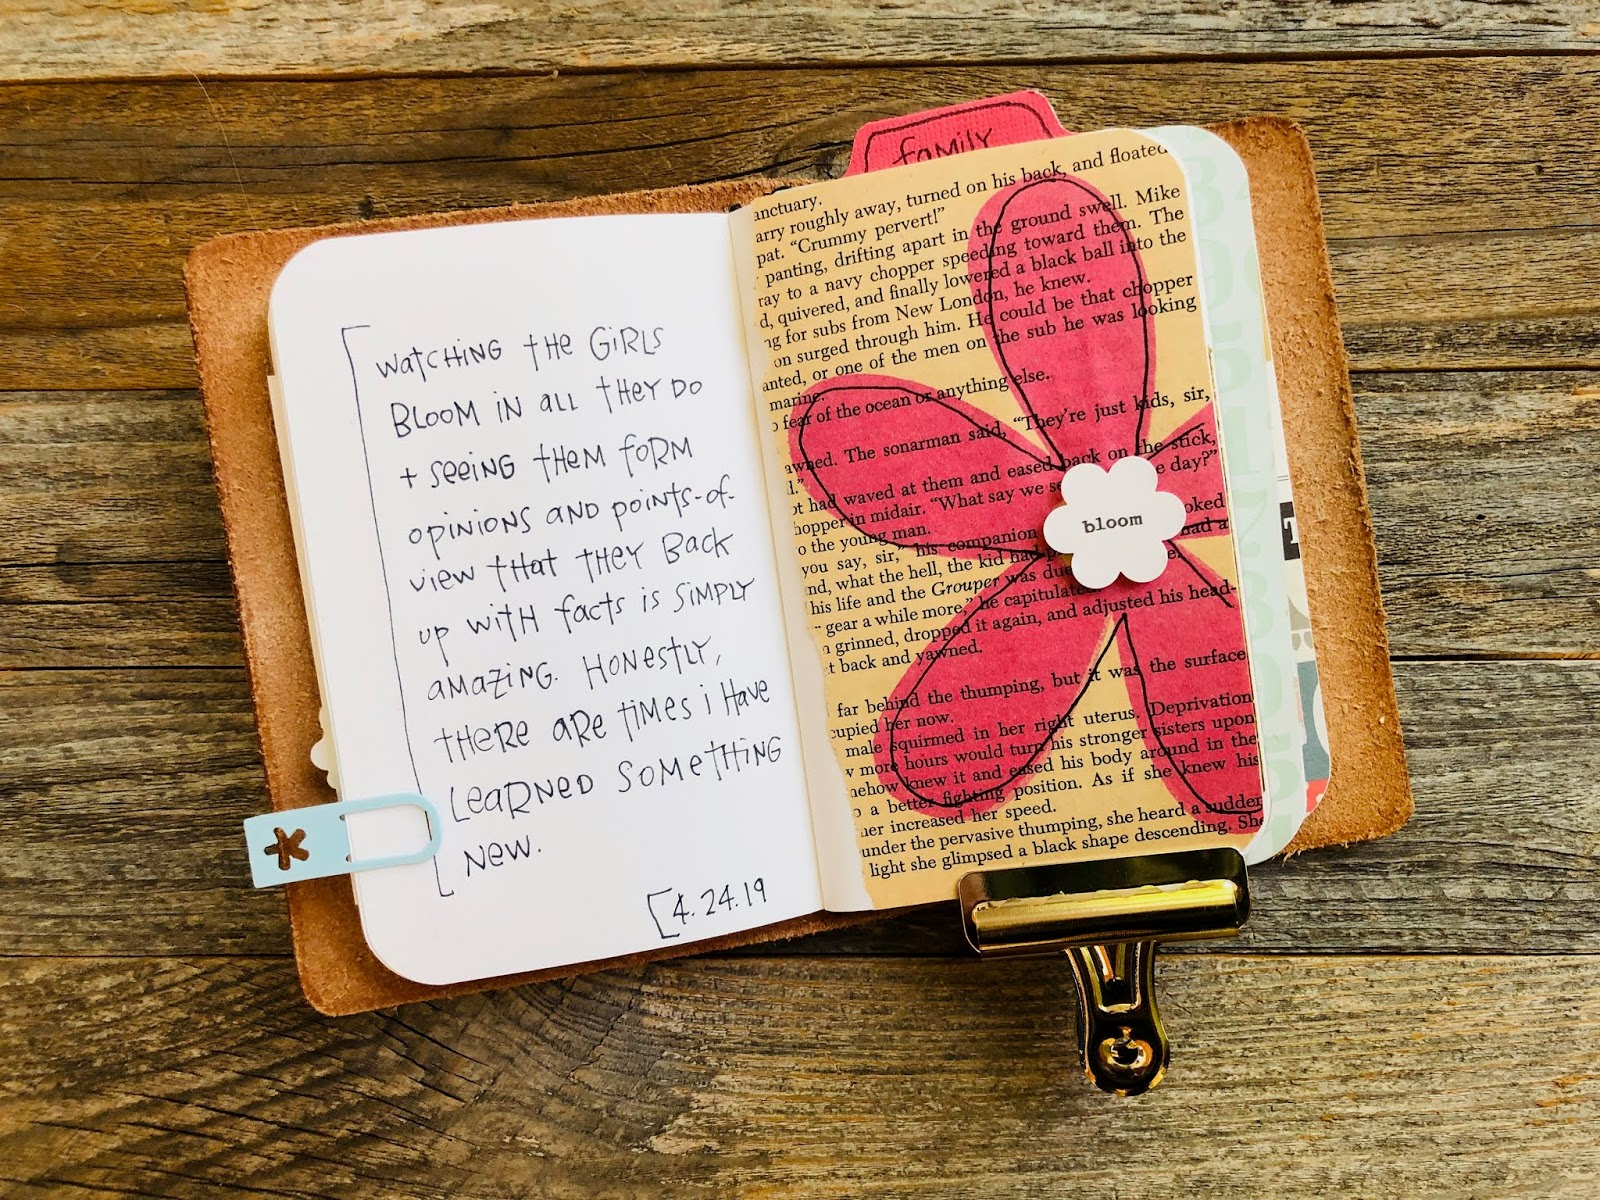 #Gratitude Journal #I Am Thankful #Gratitude #Journal #Travelers Notebook #art journaling #thankfulness #grateful